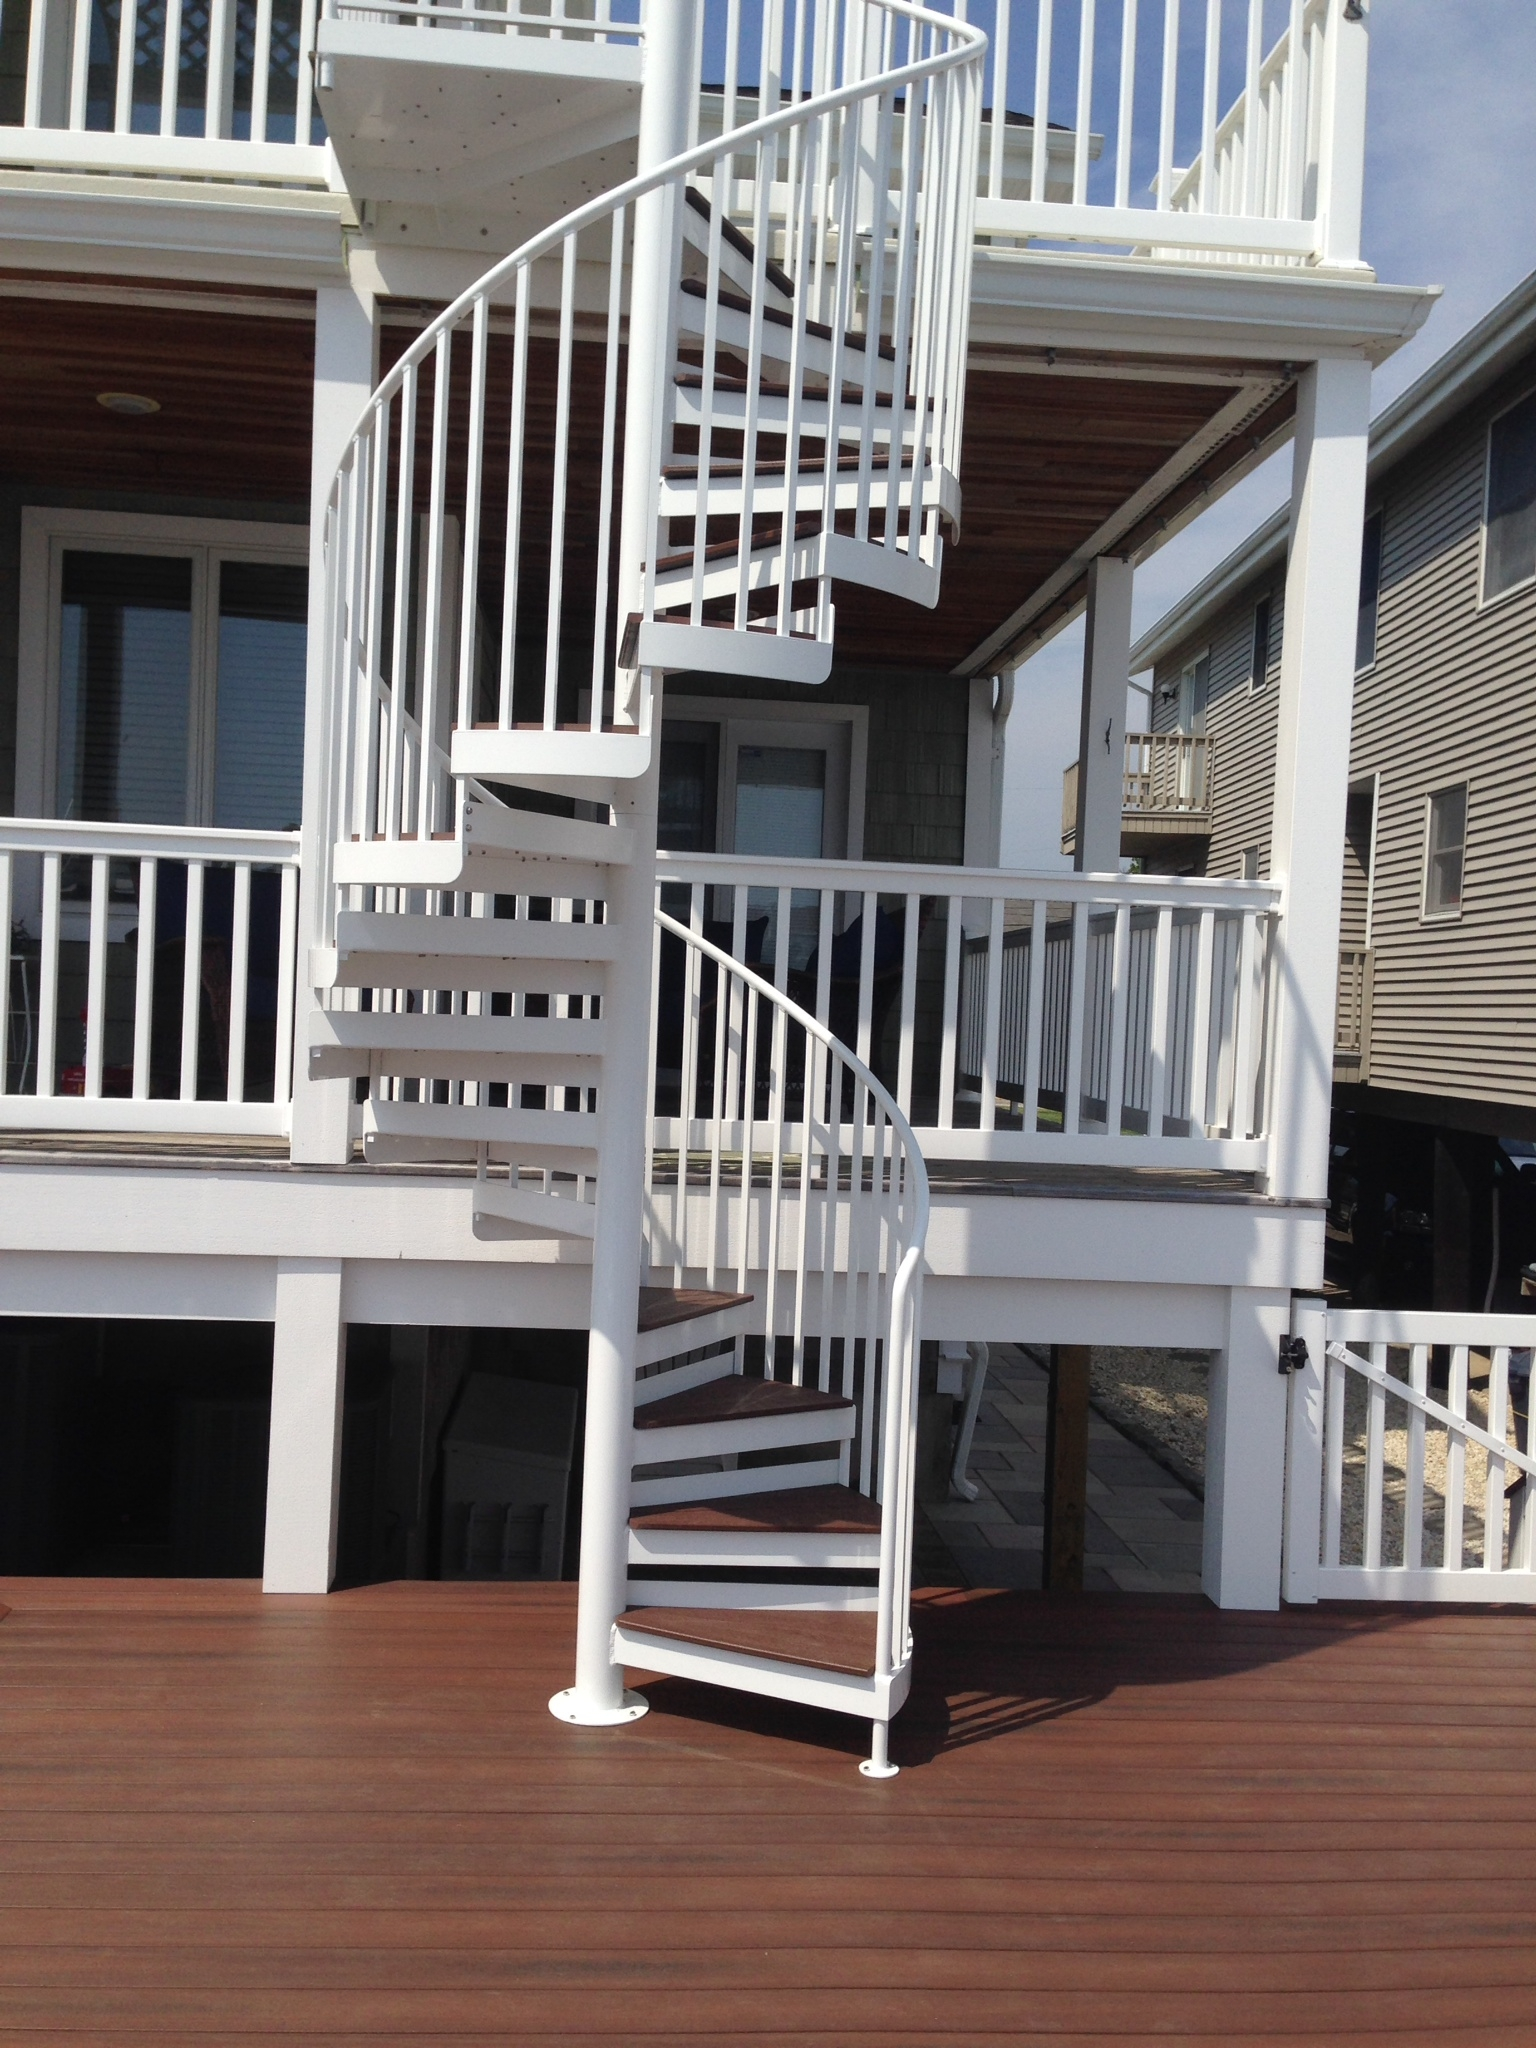 Metal Spiral Staircases Custom Spiral Staircase Nj Mitchell   Outdoor Spiral Staircase Installation   Simple   3 Floor   Outdoor   Backyard   Roof Deck